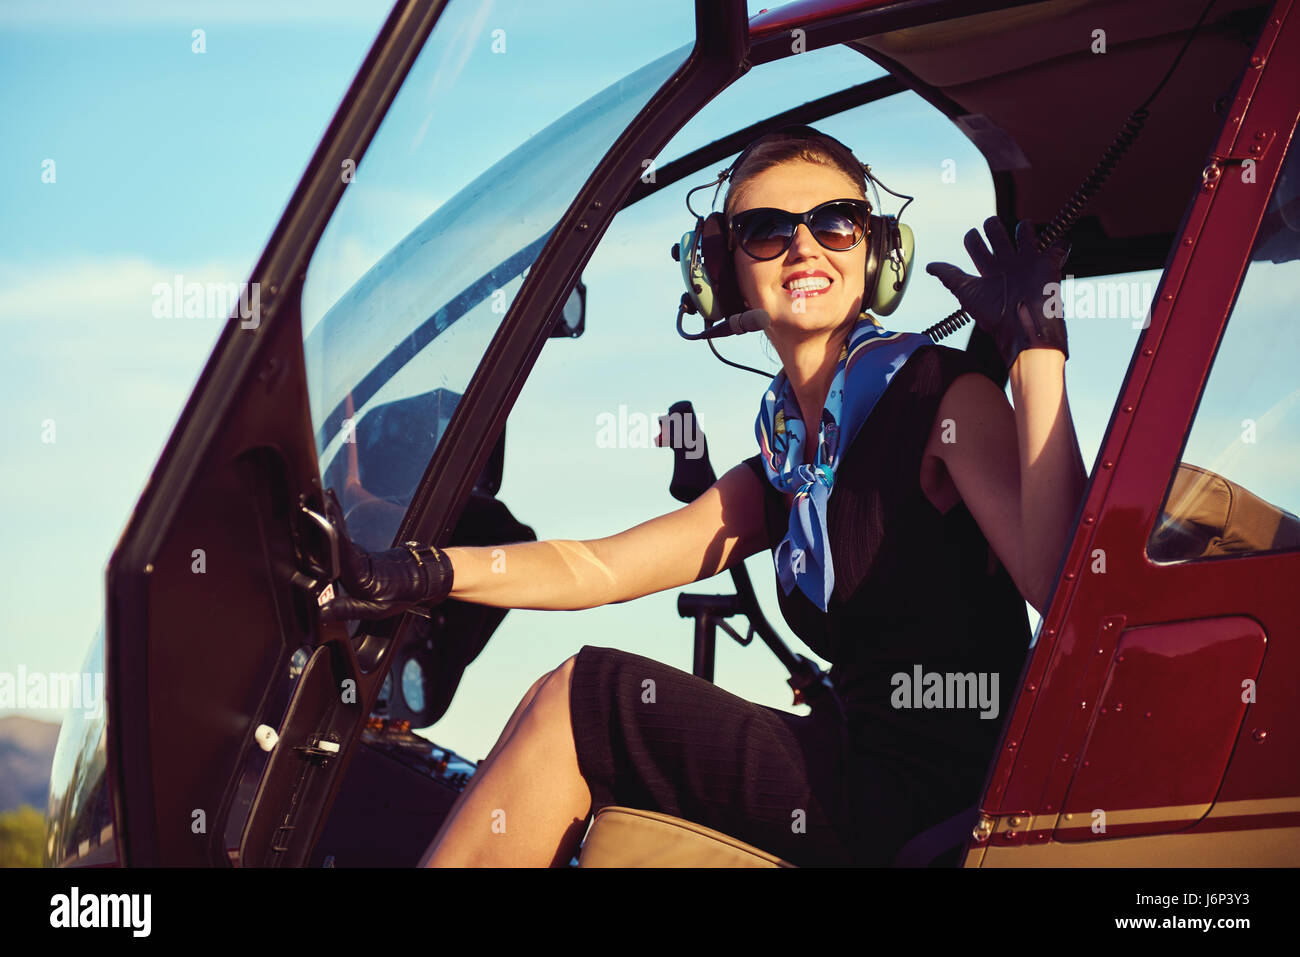 Attractive woman pilot sitting in the helicopter - Stock Image